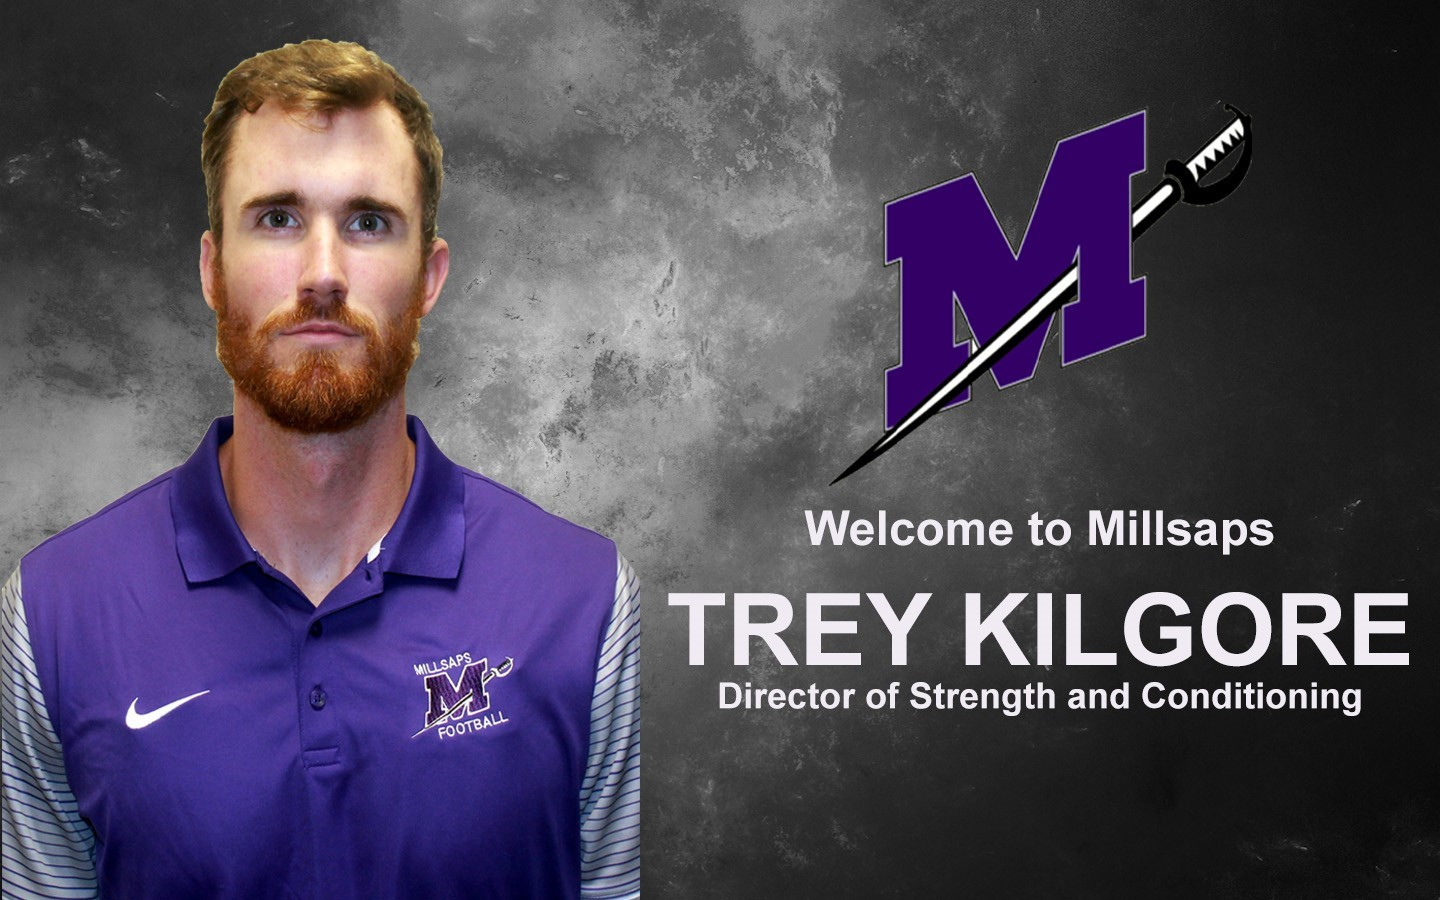 Kilgore joins Major athletics as Director of Strength and ...